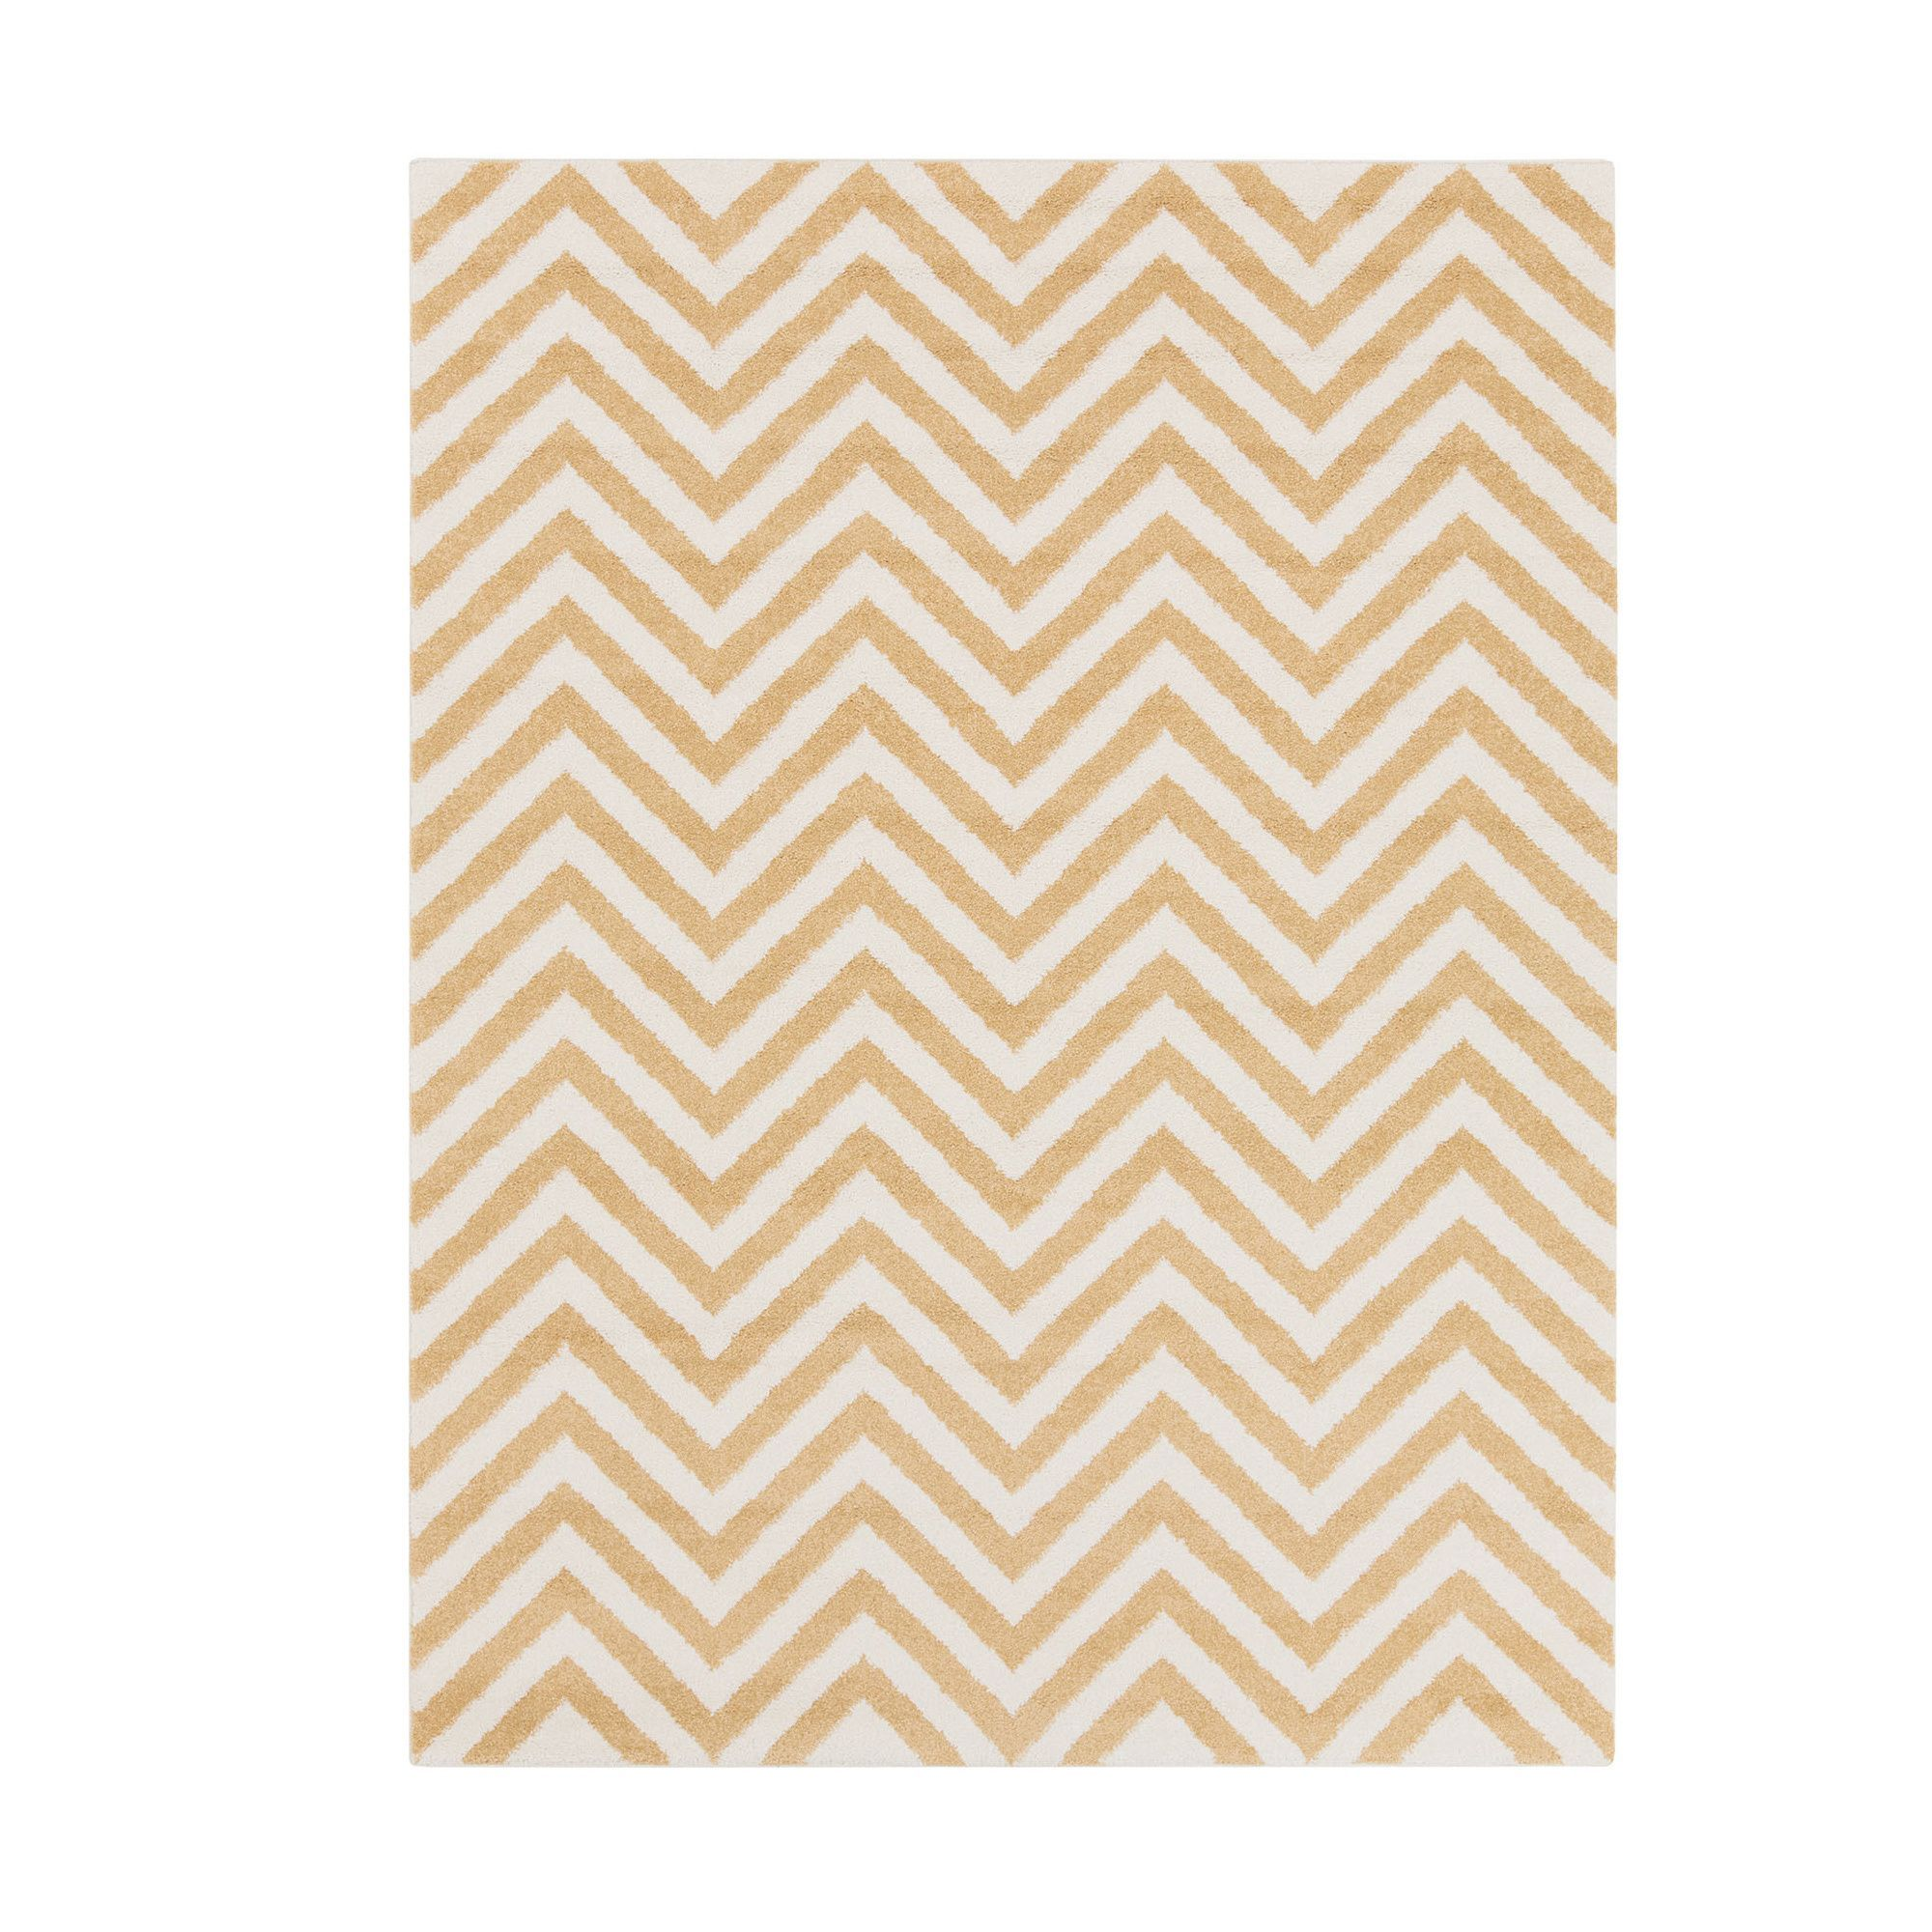 "Meticulously Woven Warren Geometric Area Rug (9'3"" x 12'6"") ("